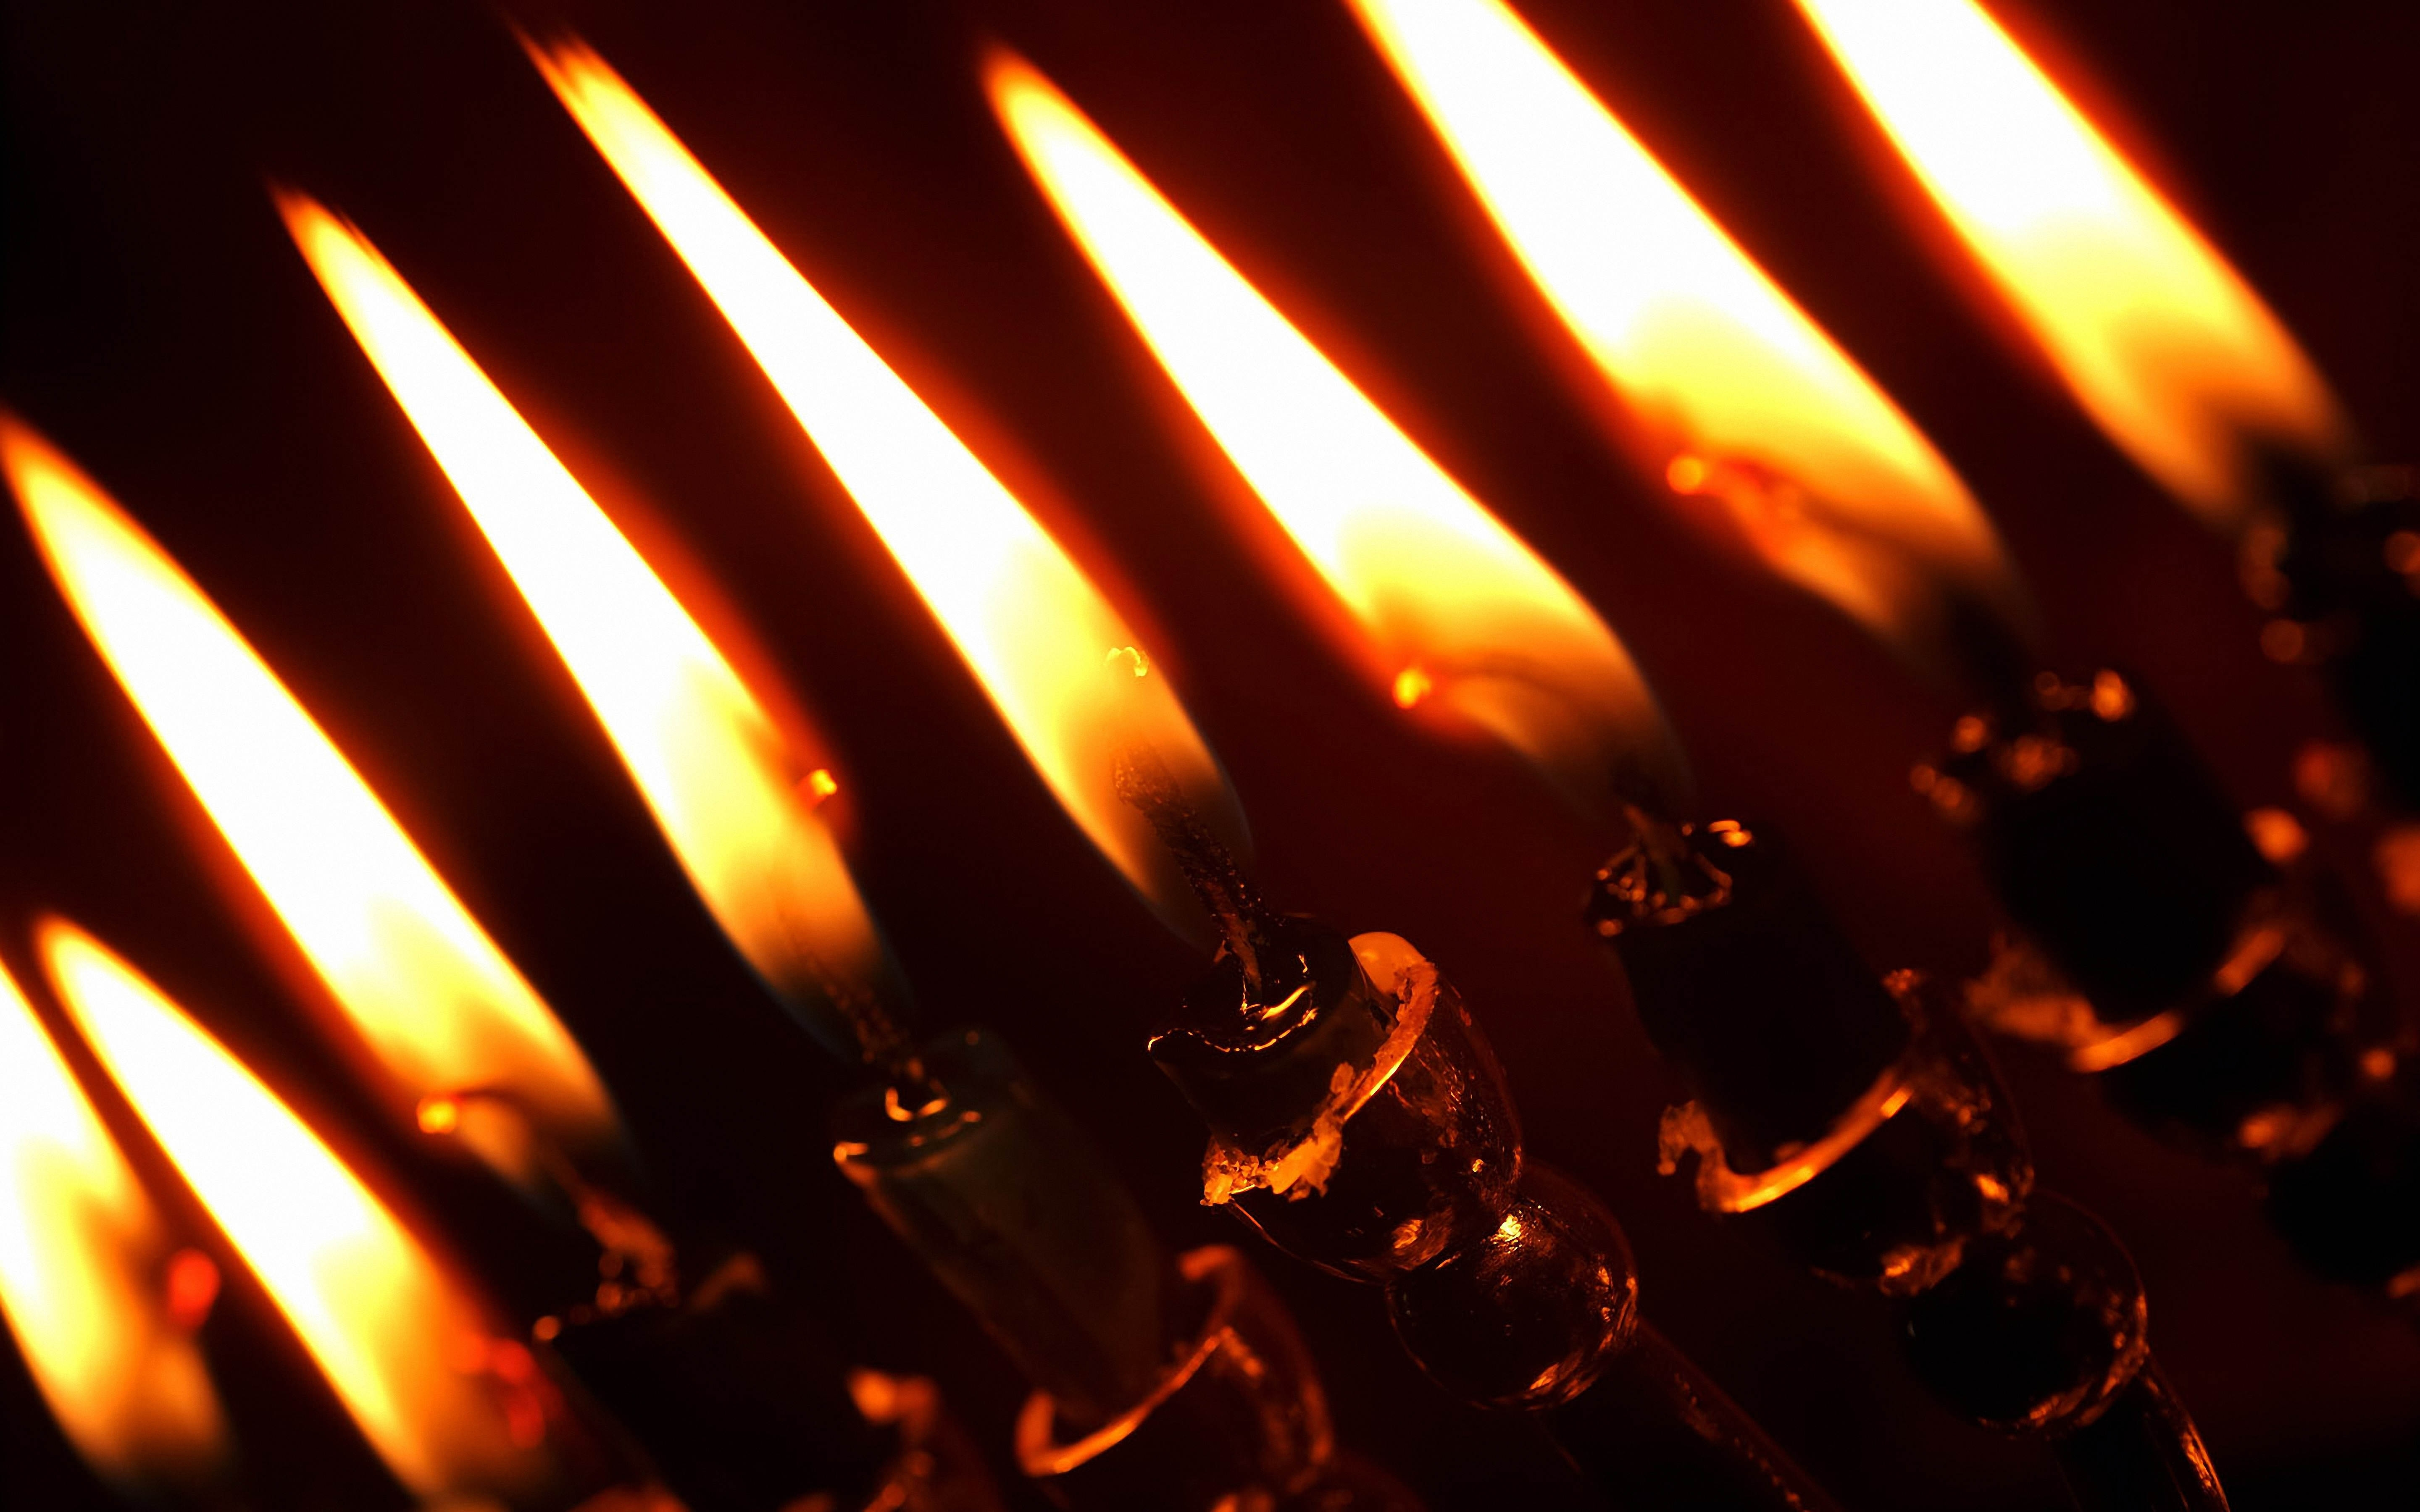 148778 Screensavers and Wallpapers Candles for phone. Download Candles, Lights, Dark, Close-Up, Darkness, Candlesticks pictures for free